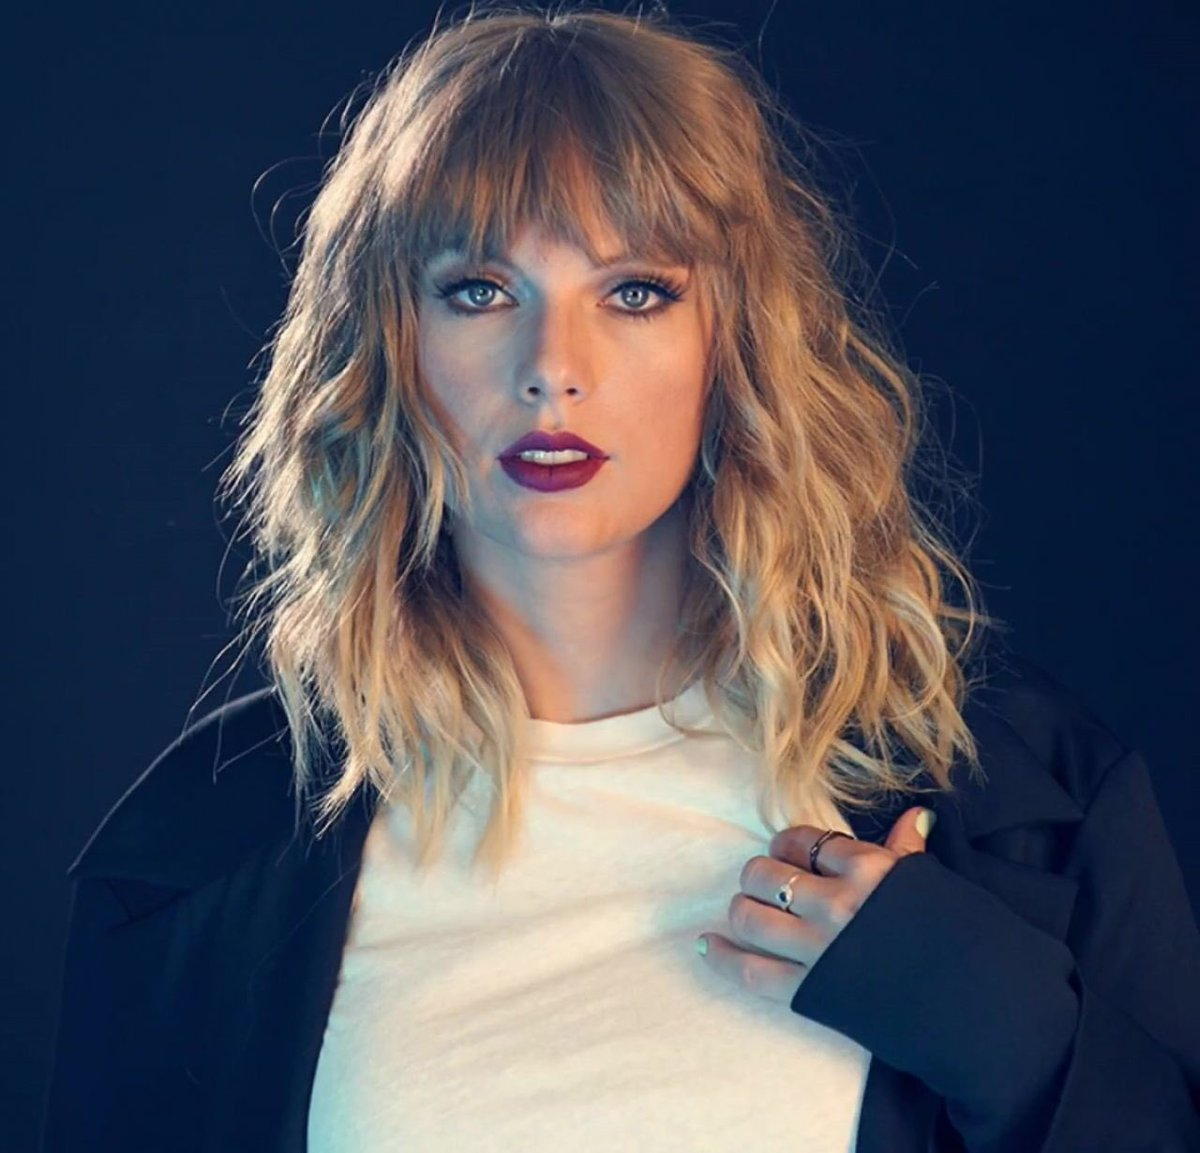 Taylor Swift News On Twitter The Only Female Artists Who Have Won Album Of The Year At The Grammys Under The Age Of 25 Taylor Swift 20 Alanis Morissette 21 Barbra Streisand